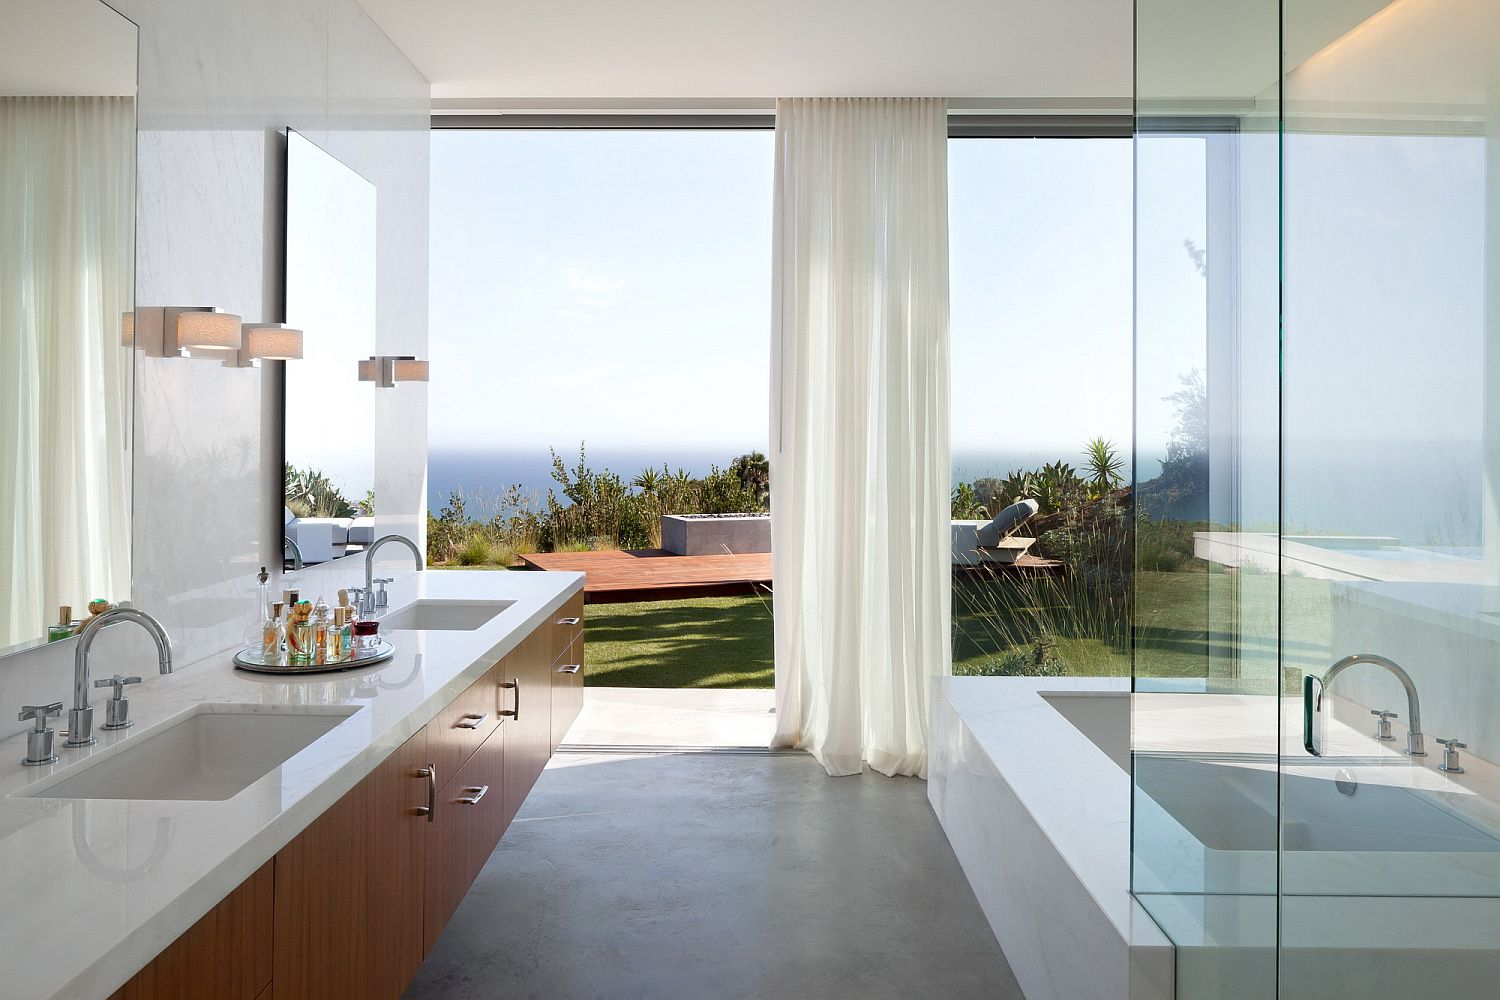 Contemporary bathroom completely open to awesome ocean views